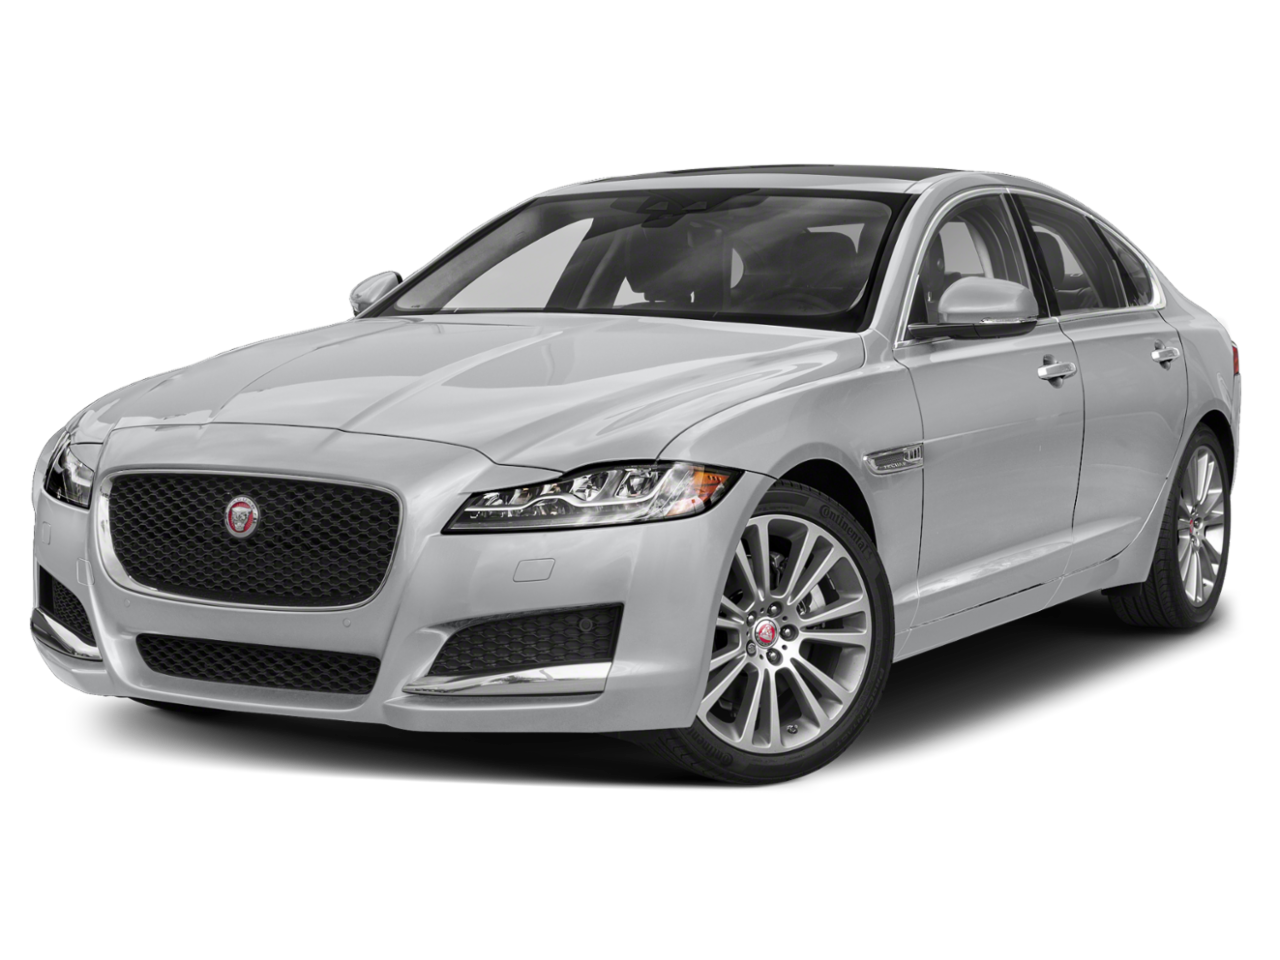 Jaguar 2020 XF 30t Checkered Flag Limited Edition